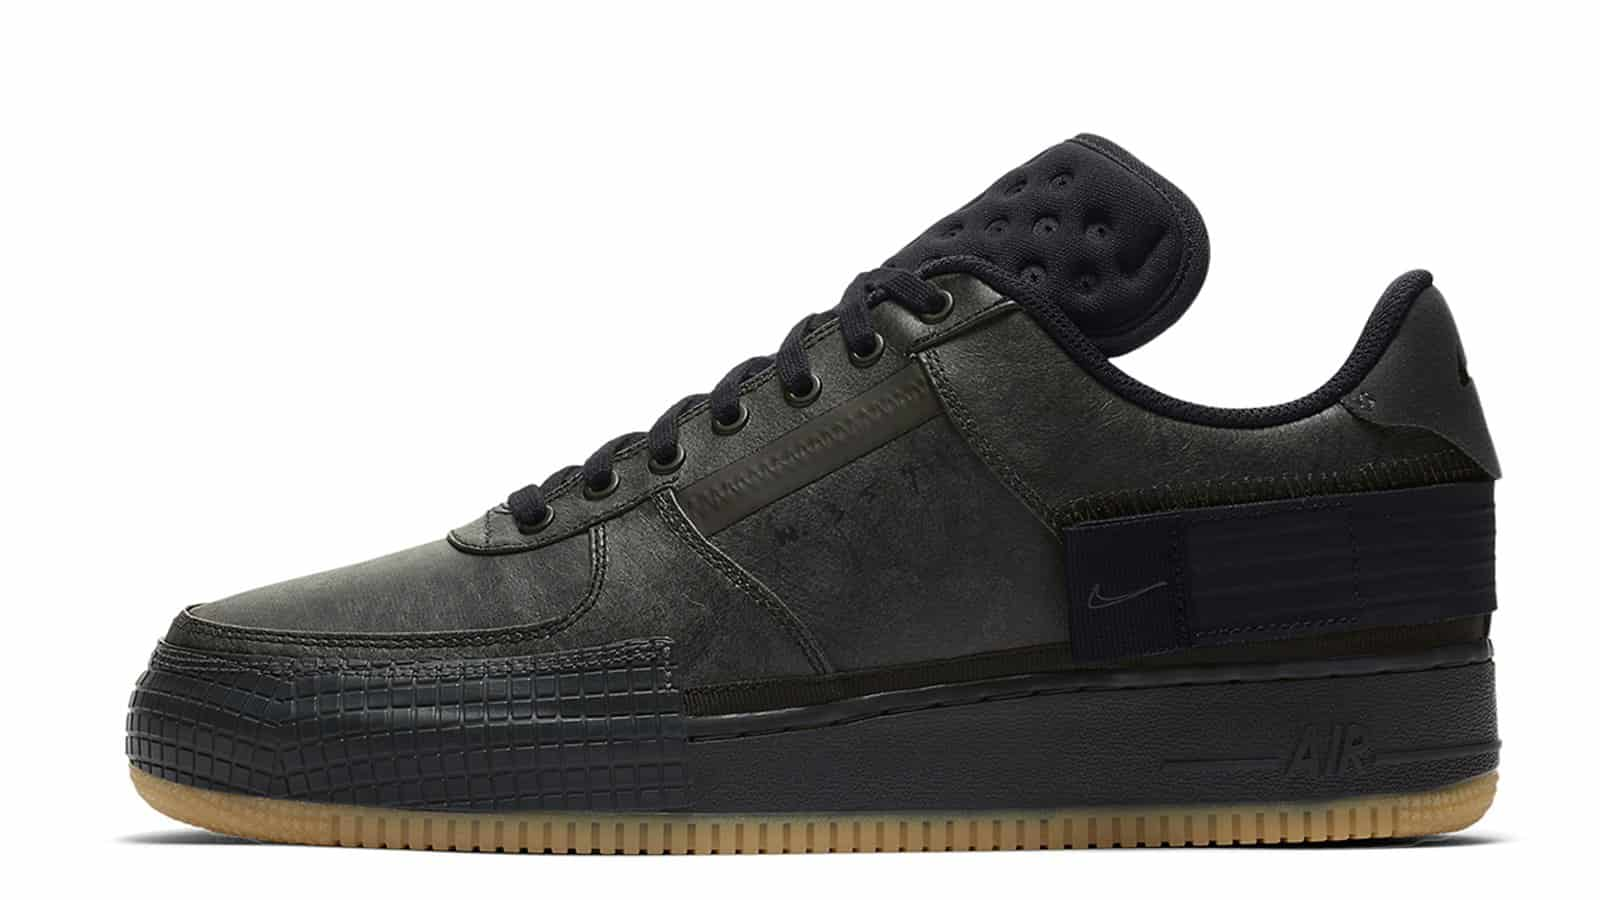 Nike Air Force 1 Type Black Gum CJ1281-001